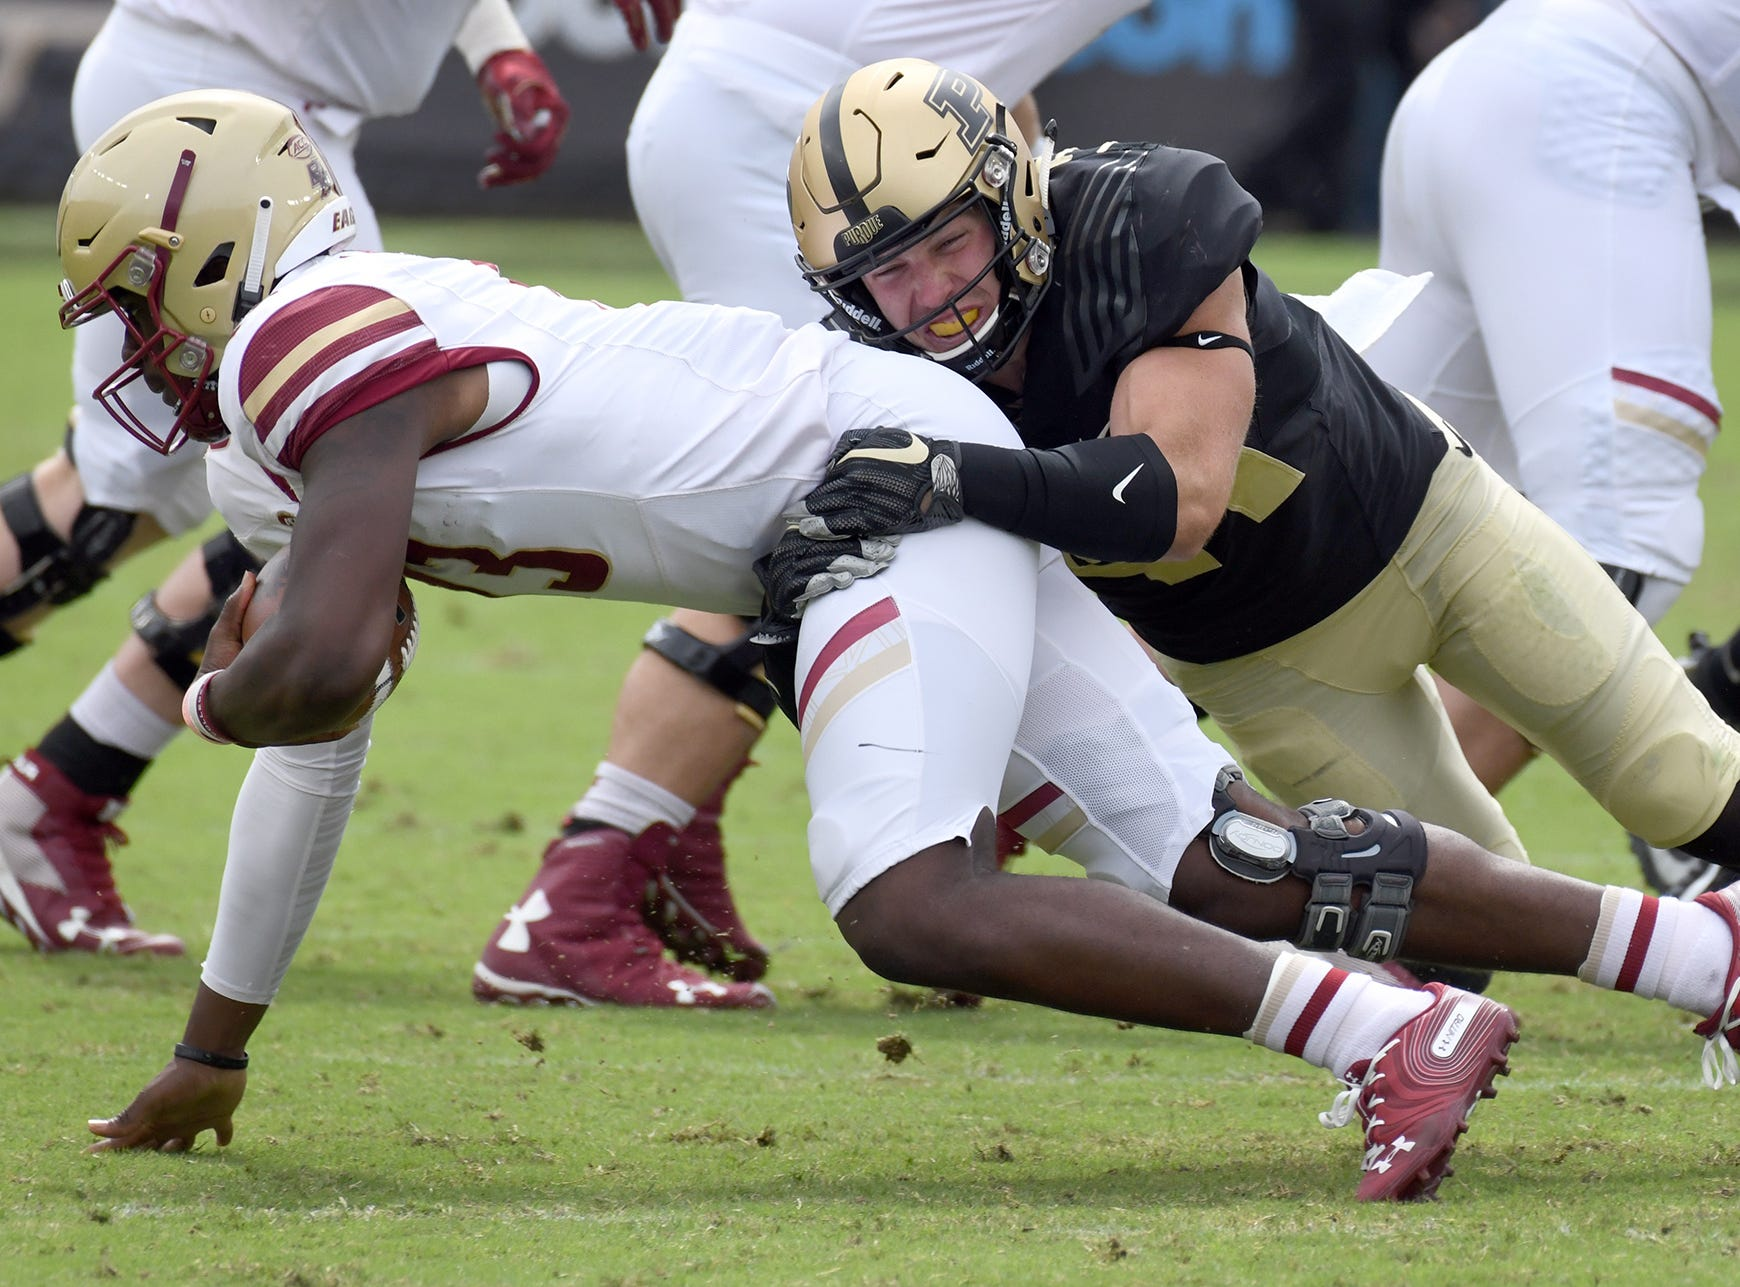 Purdue's Jacob Thieneman sacks BC quarterback Anthony Brown in Purdue's 30-13 win in West Lafayette on Saturday September 22, 2018.